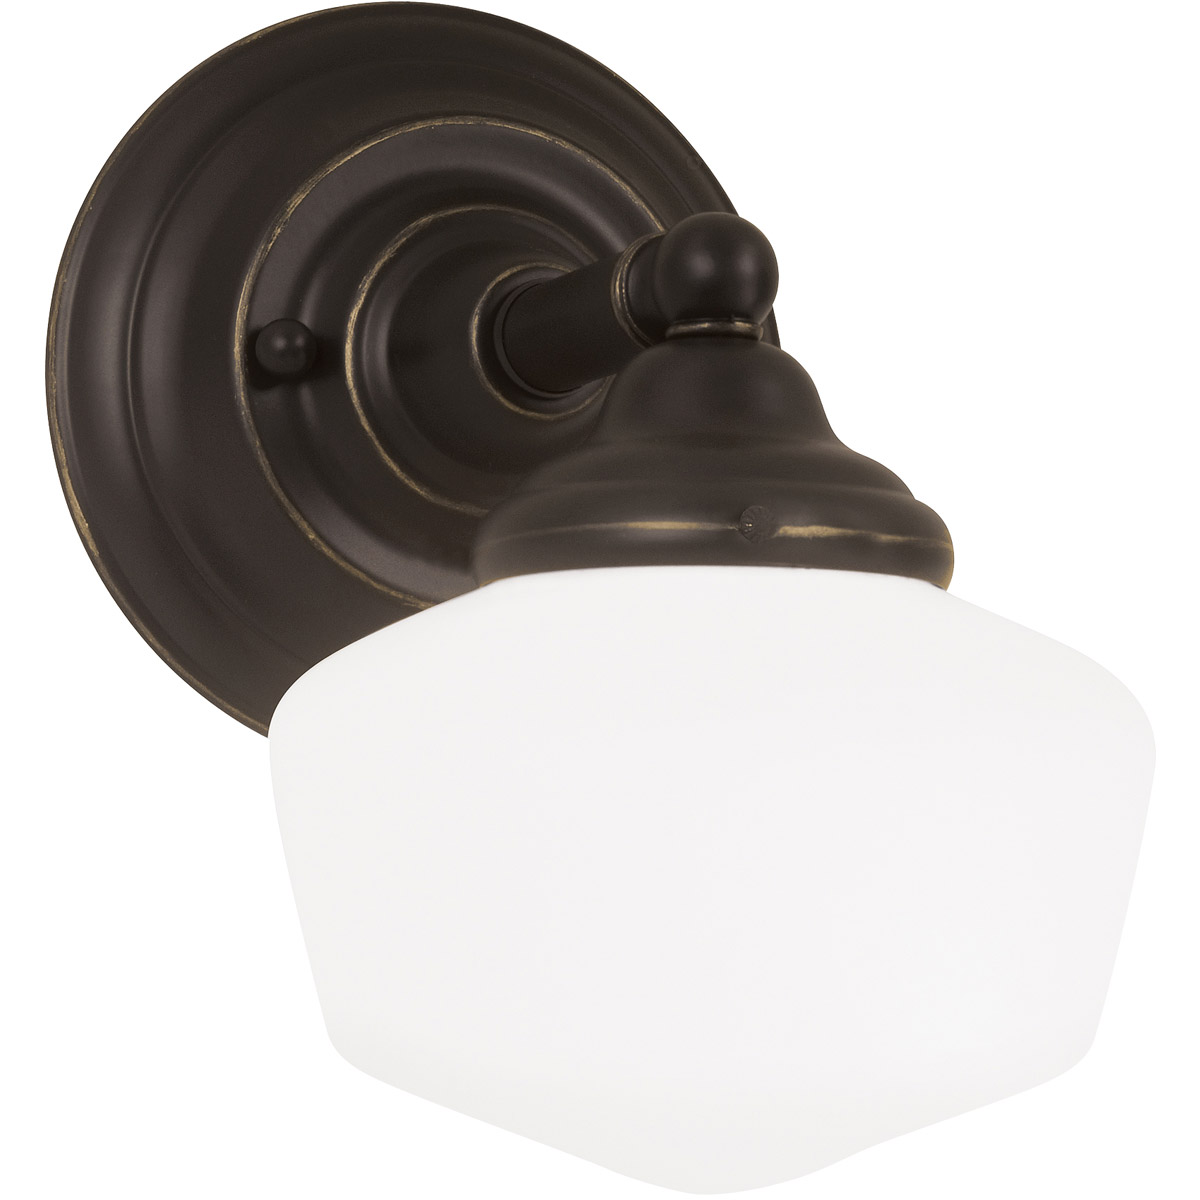 Sea Gull Academy 1 Light Bath Sconce in Heirloom Bronze 44436-782 photo